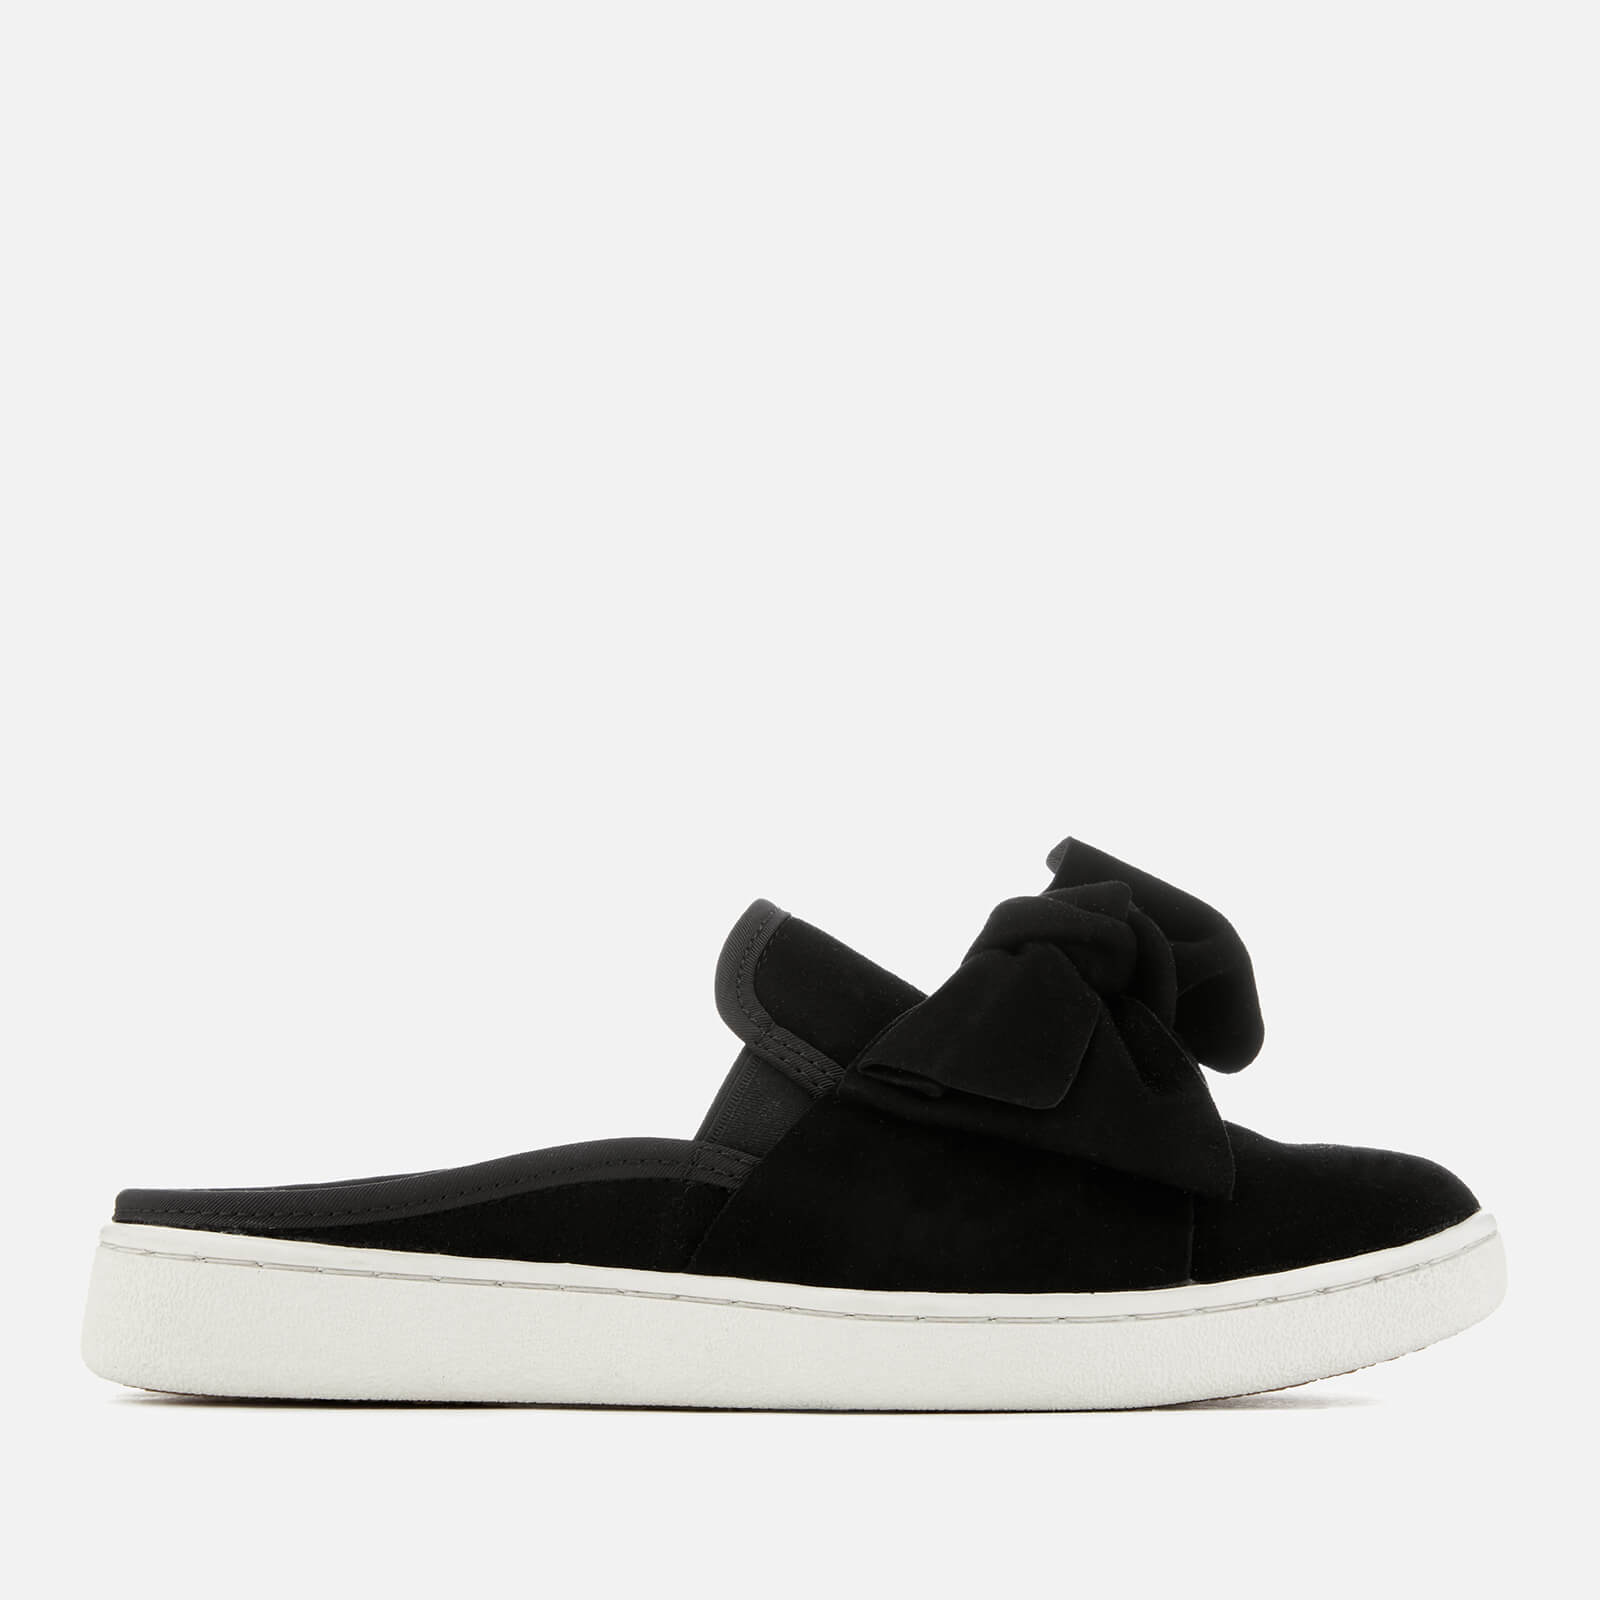 48805676c17 UGG Women's Luci Bow Suede Slip On Trainers - Black